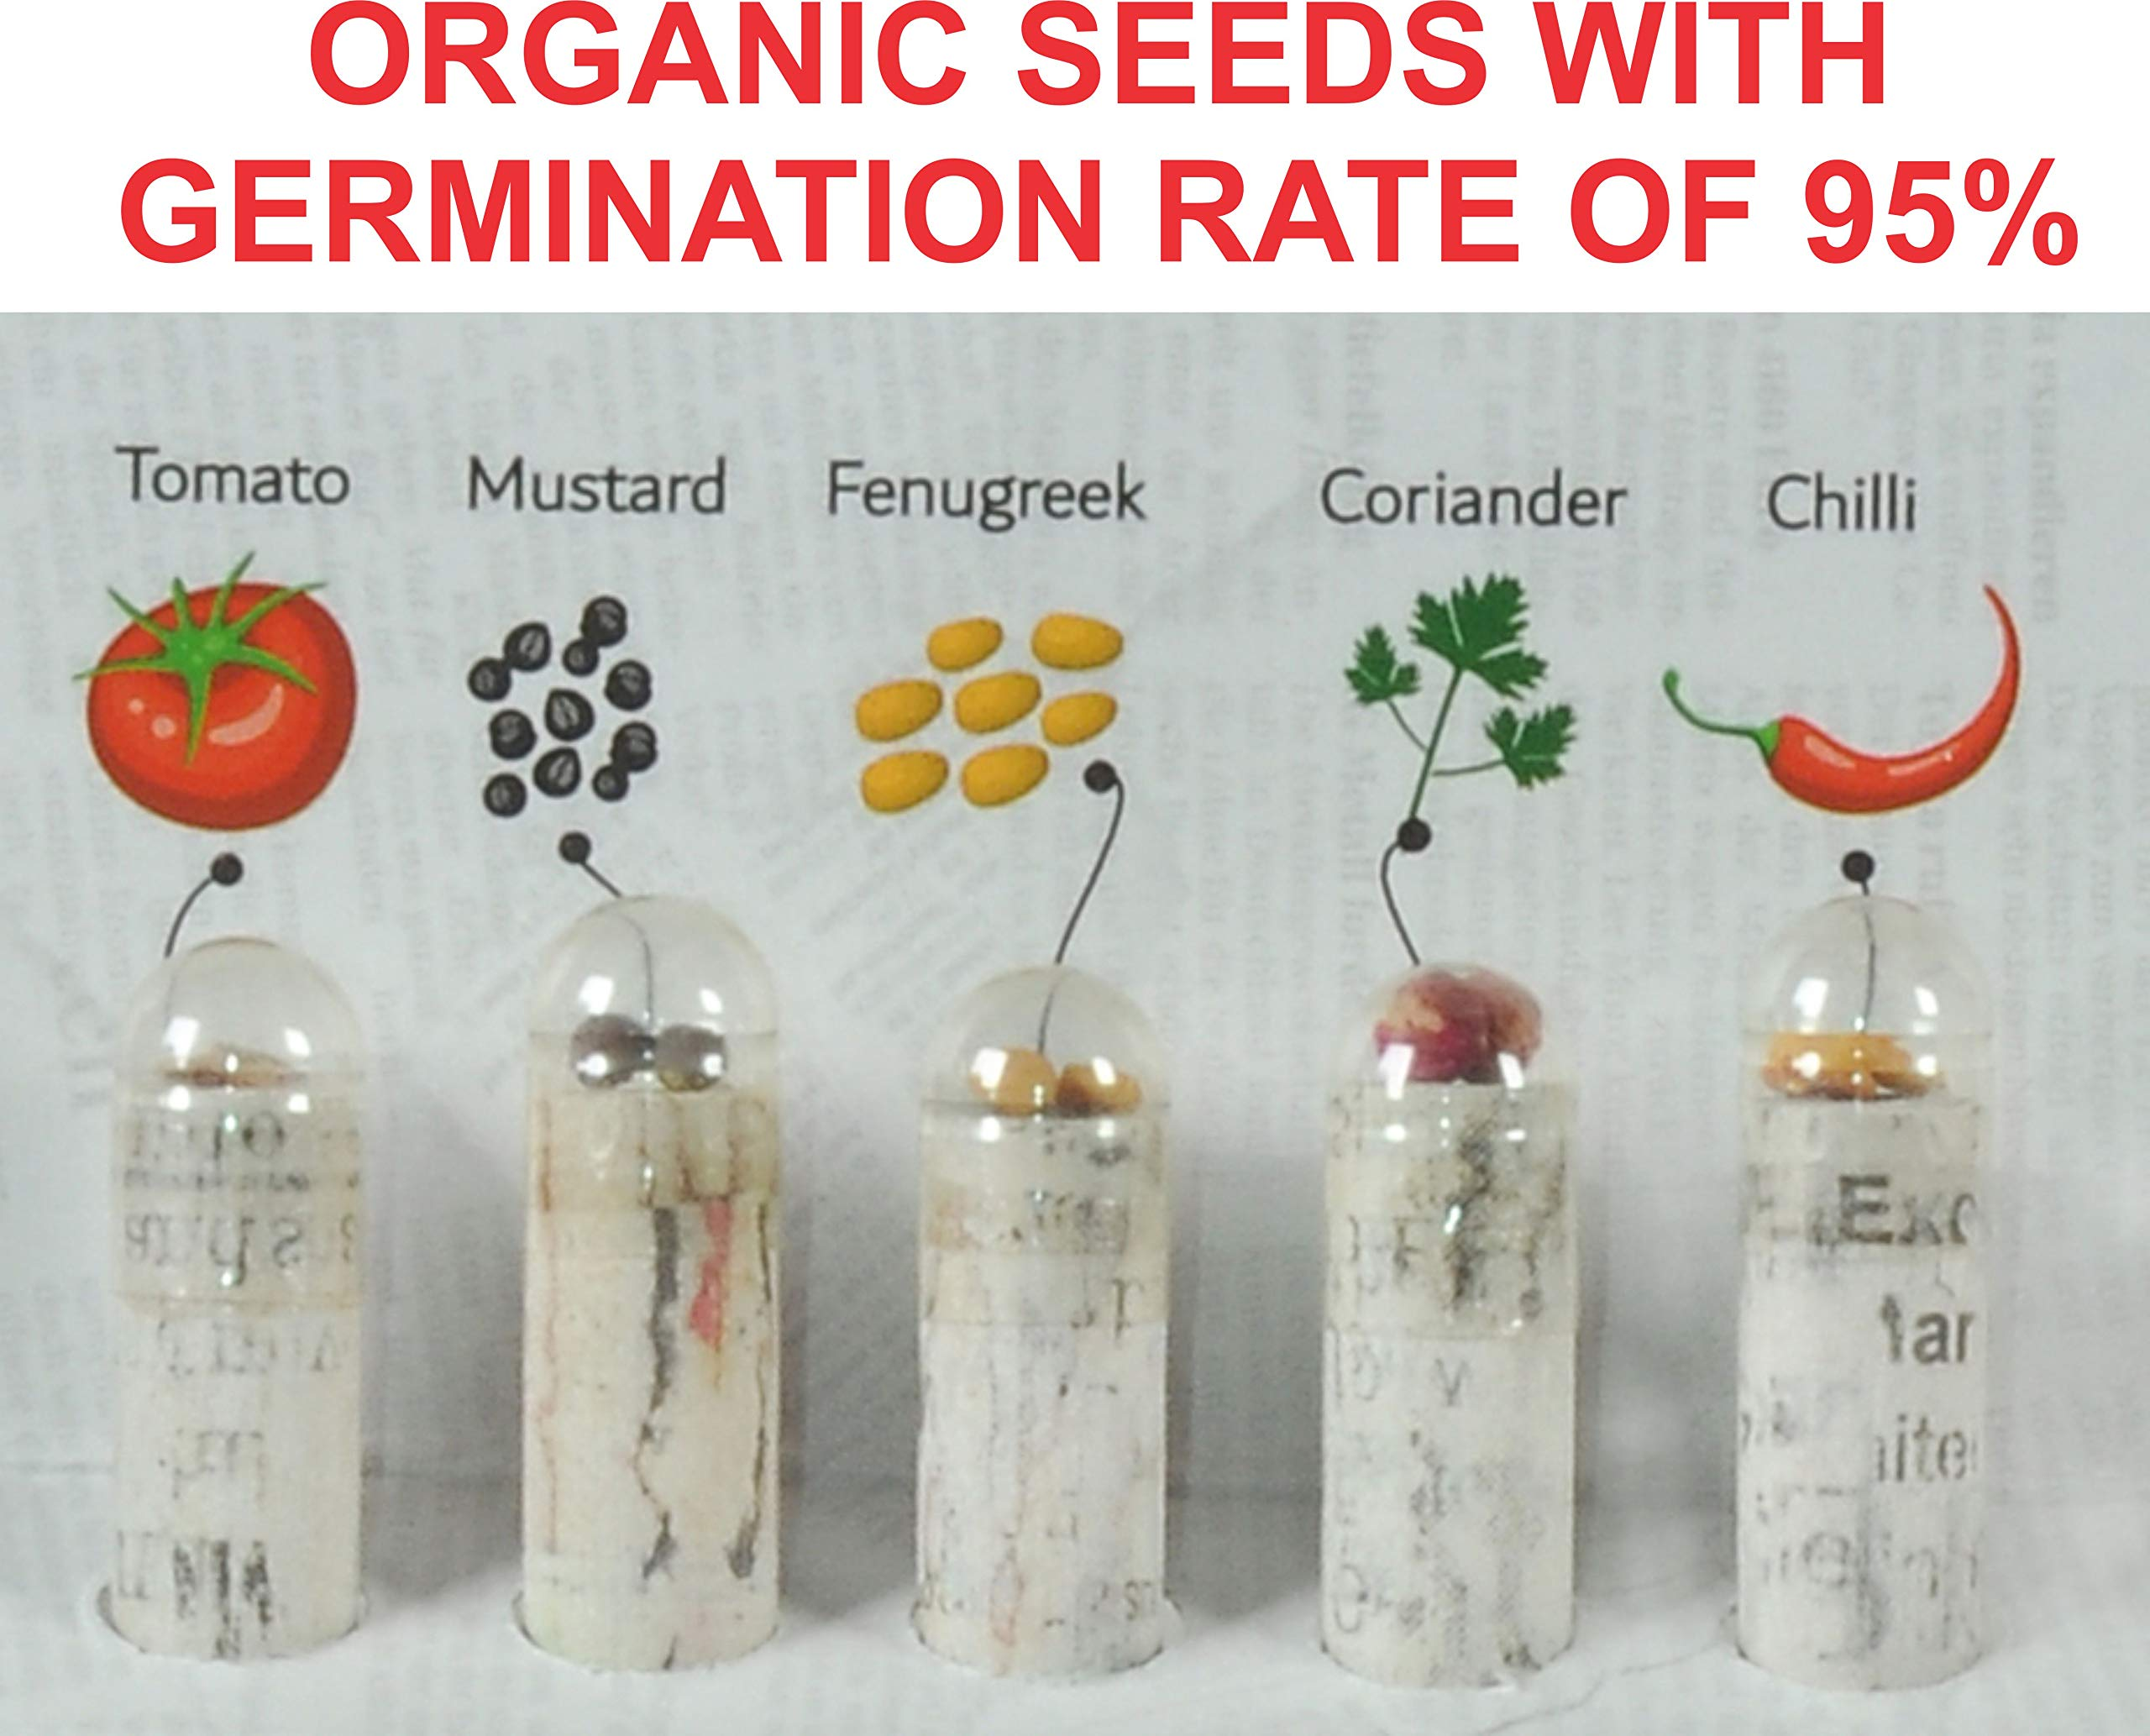 WOOD FREE PLANTABLE PENCIL HB#2 EXTRA DARK 36 Pencils + 5 Silicon Gripers FREE l 100% Recycled Newspapers l 100% Eco Friendly l 5 Assorted Seeds- TOMATO   FENUGREEK   CORIANDER   CHILI   MUSTRAD by SAVE GREEN WORLD (Image #4)